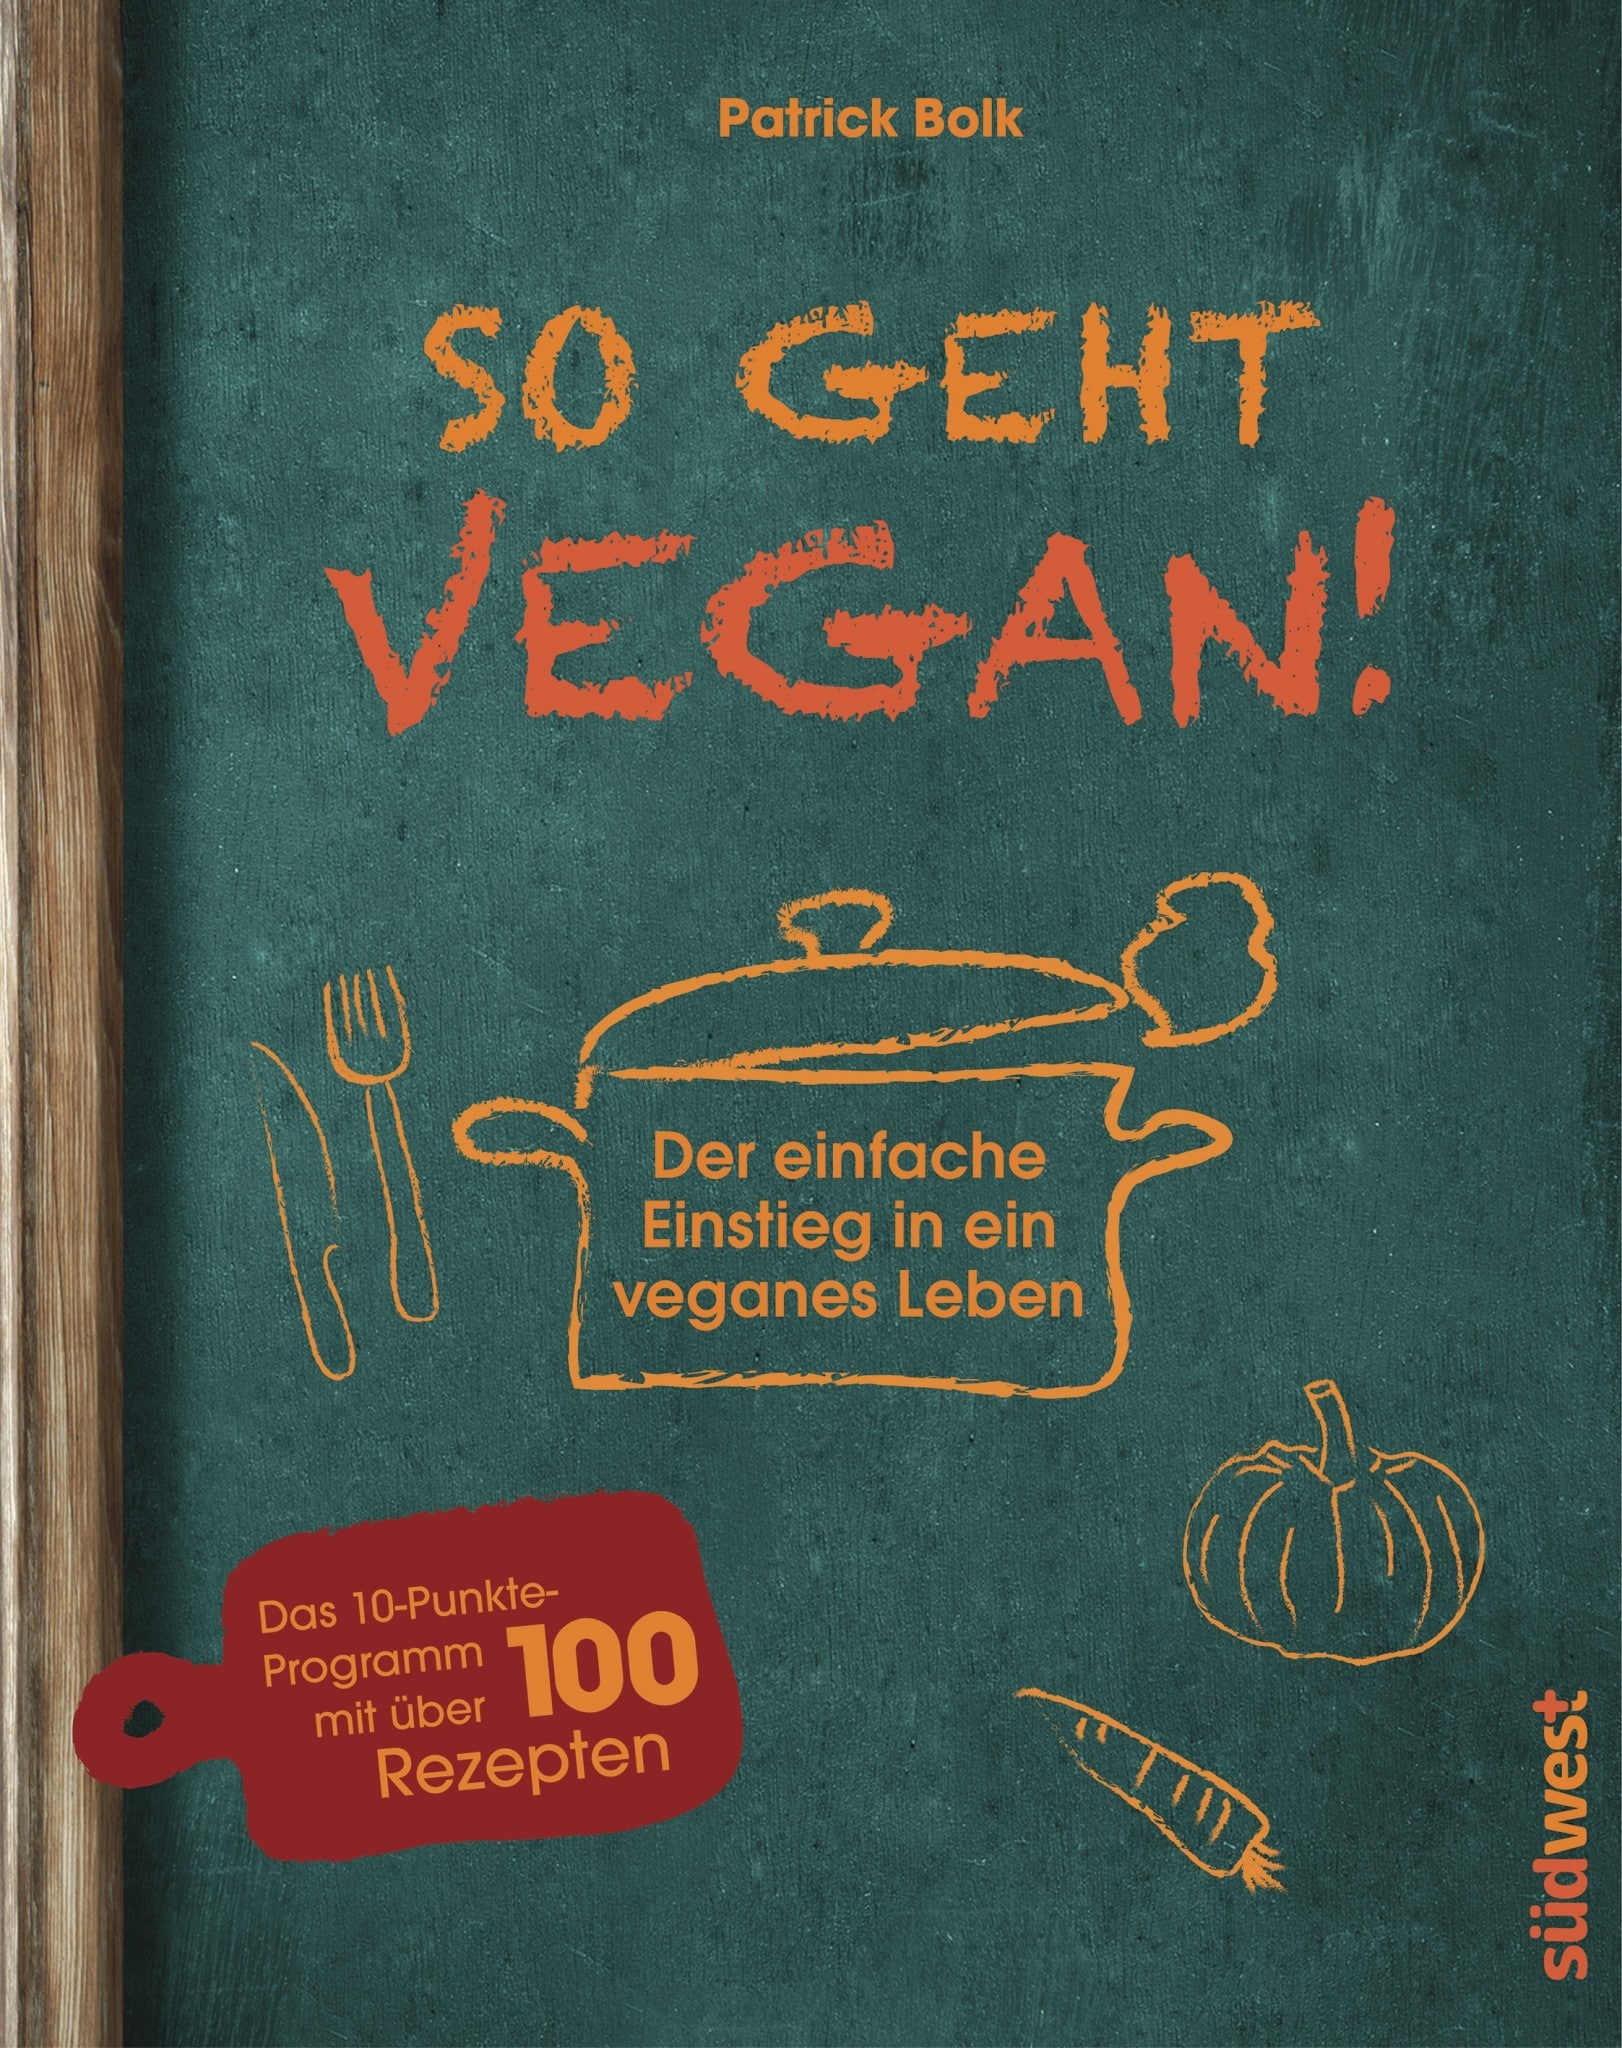 https://proveg.com/de/wp-content/uploads/sites/5/2018/10/So-geht-vegan.jpg